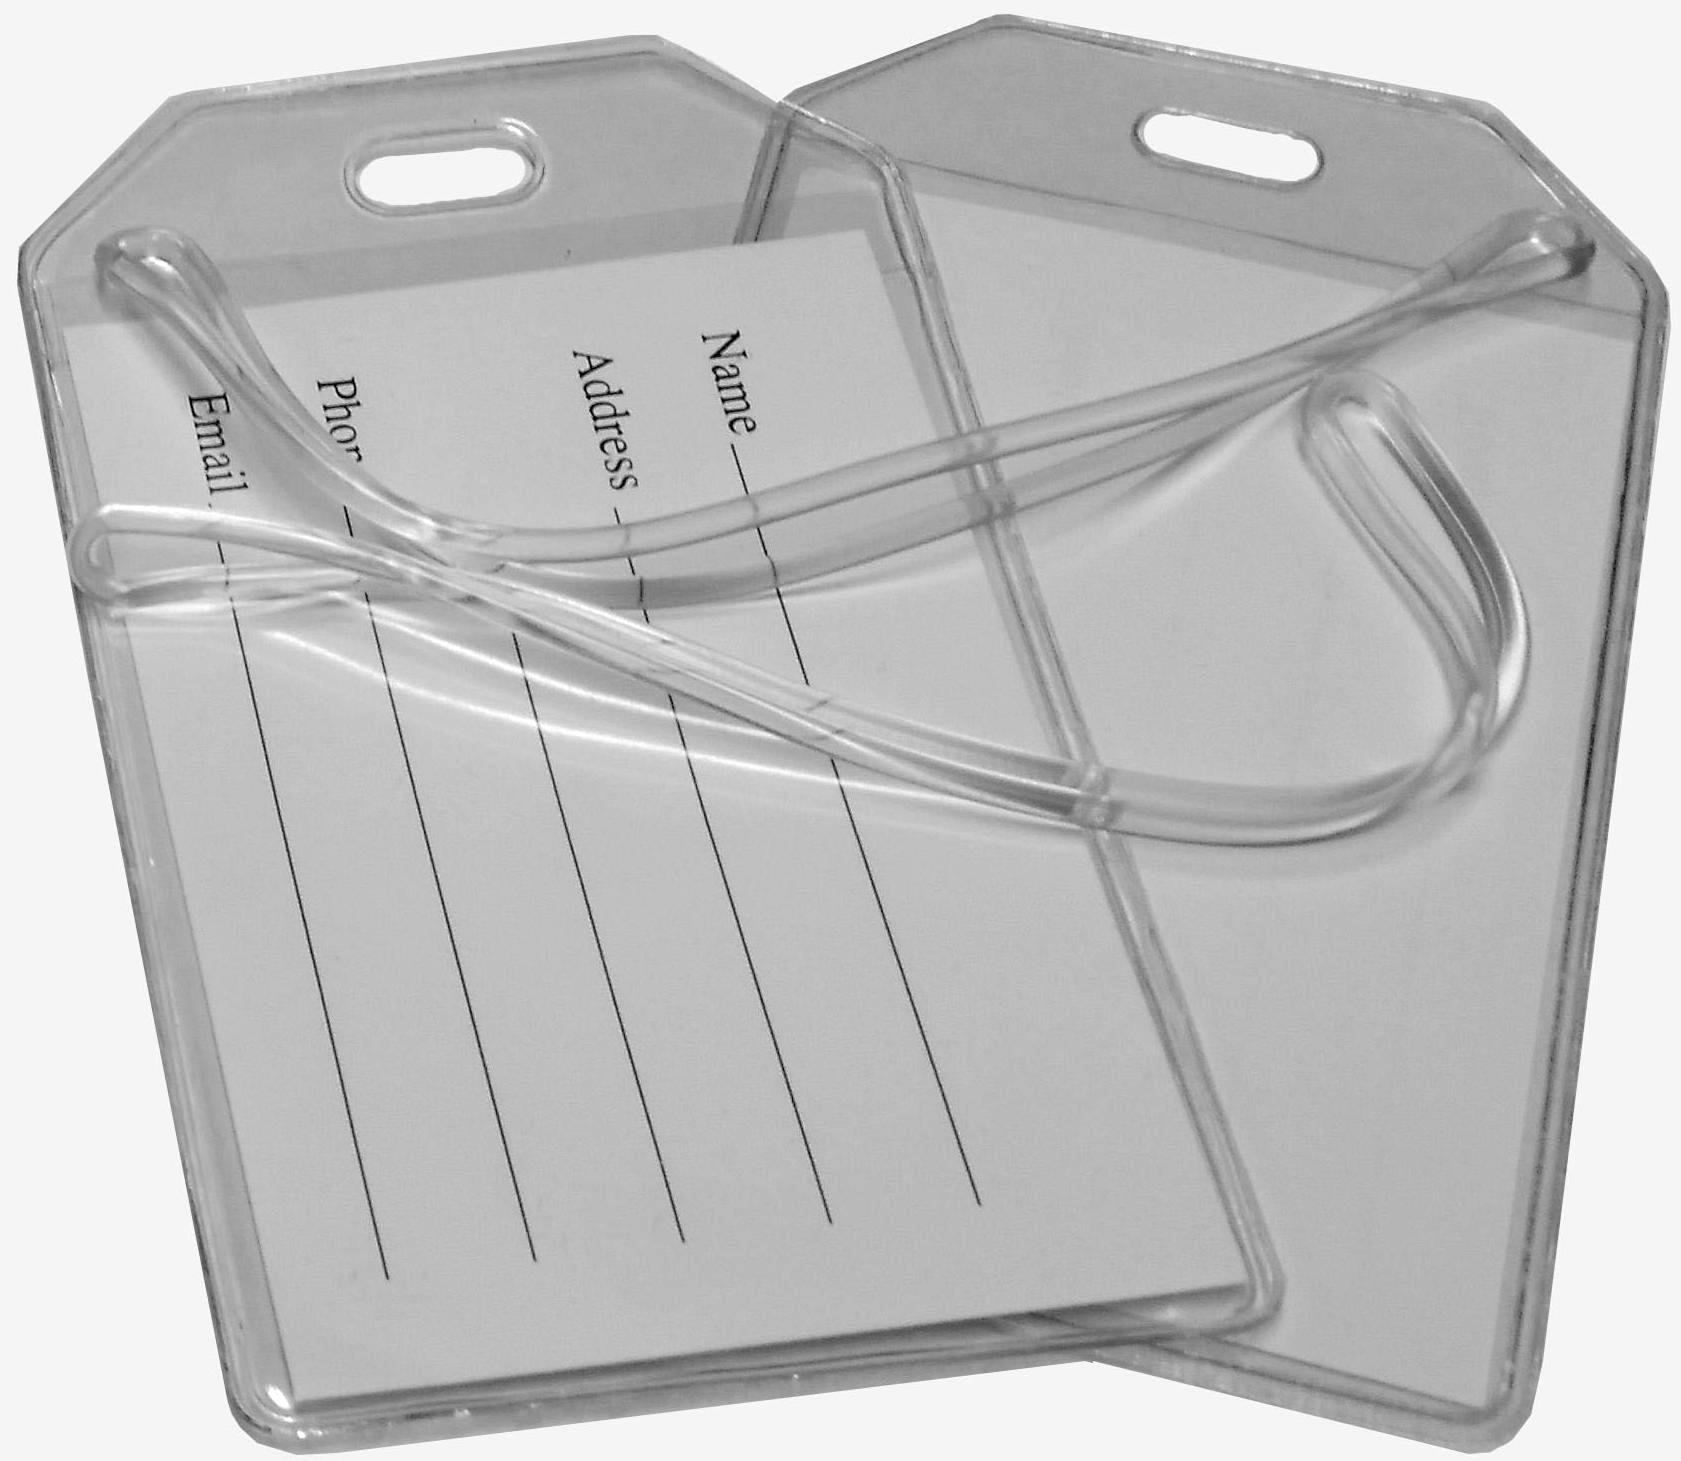 Clear Vinyl Luggage Tags with Loops & Name Cards - Set of 12